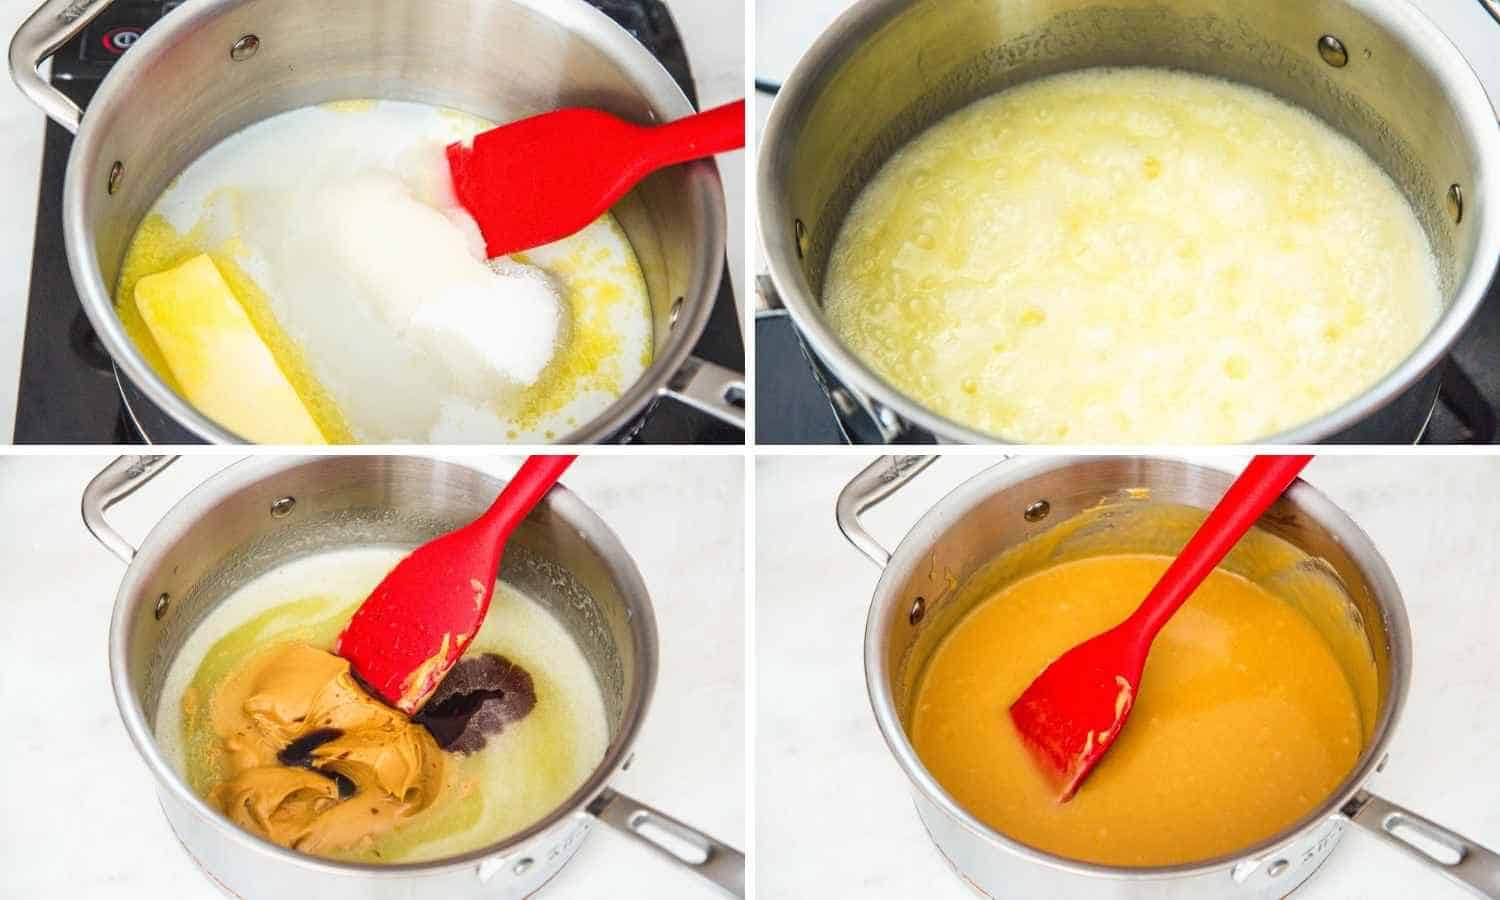 Collage of four images showing how to cook the no bake cookie mixture in a saucepan